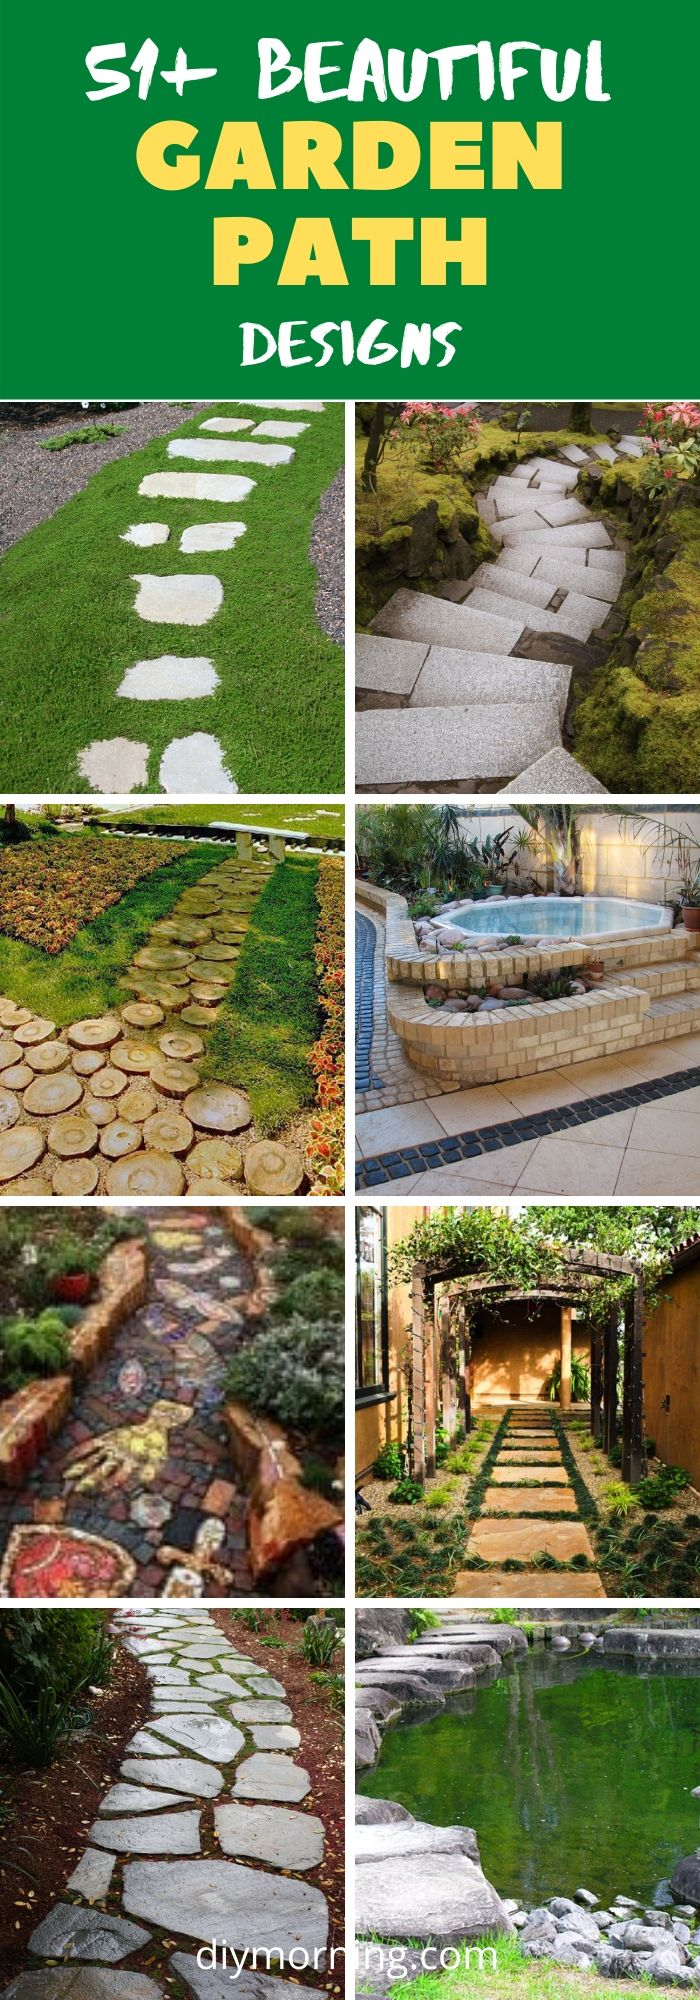 46+ Easy & Cheap Garden Path Ideas For Your Beautiful Garden